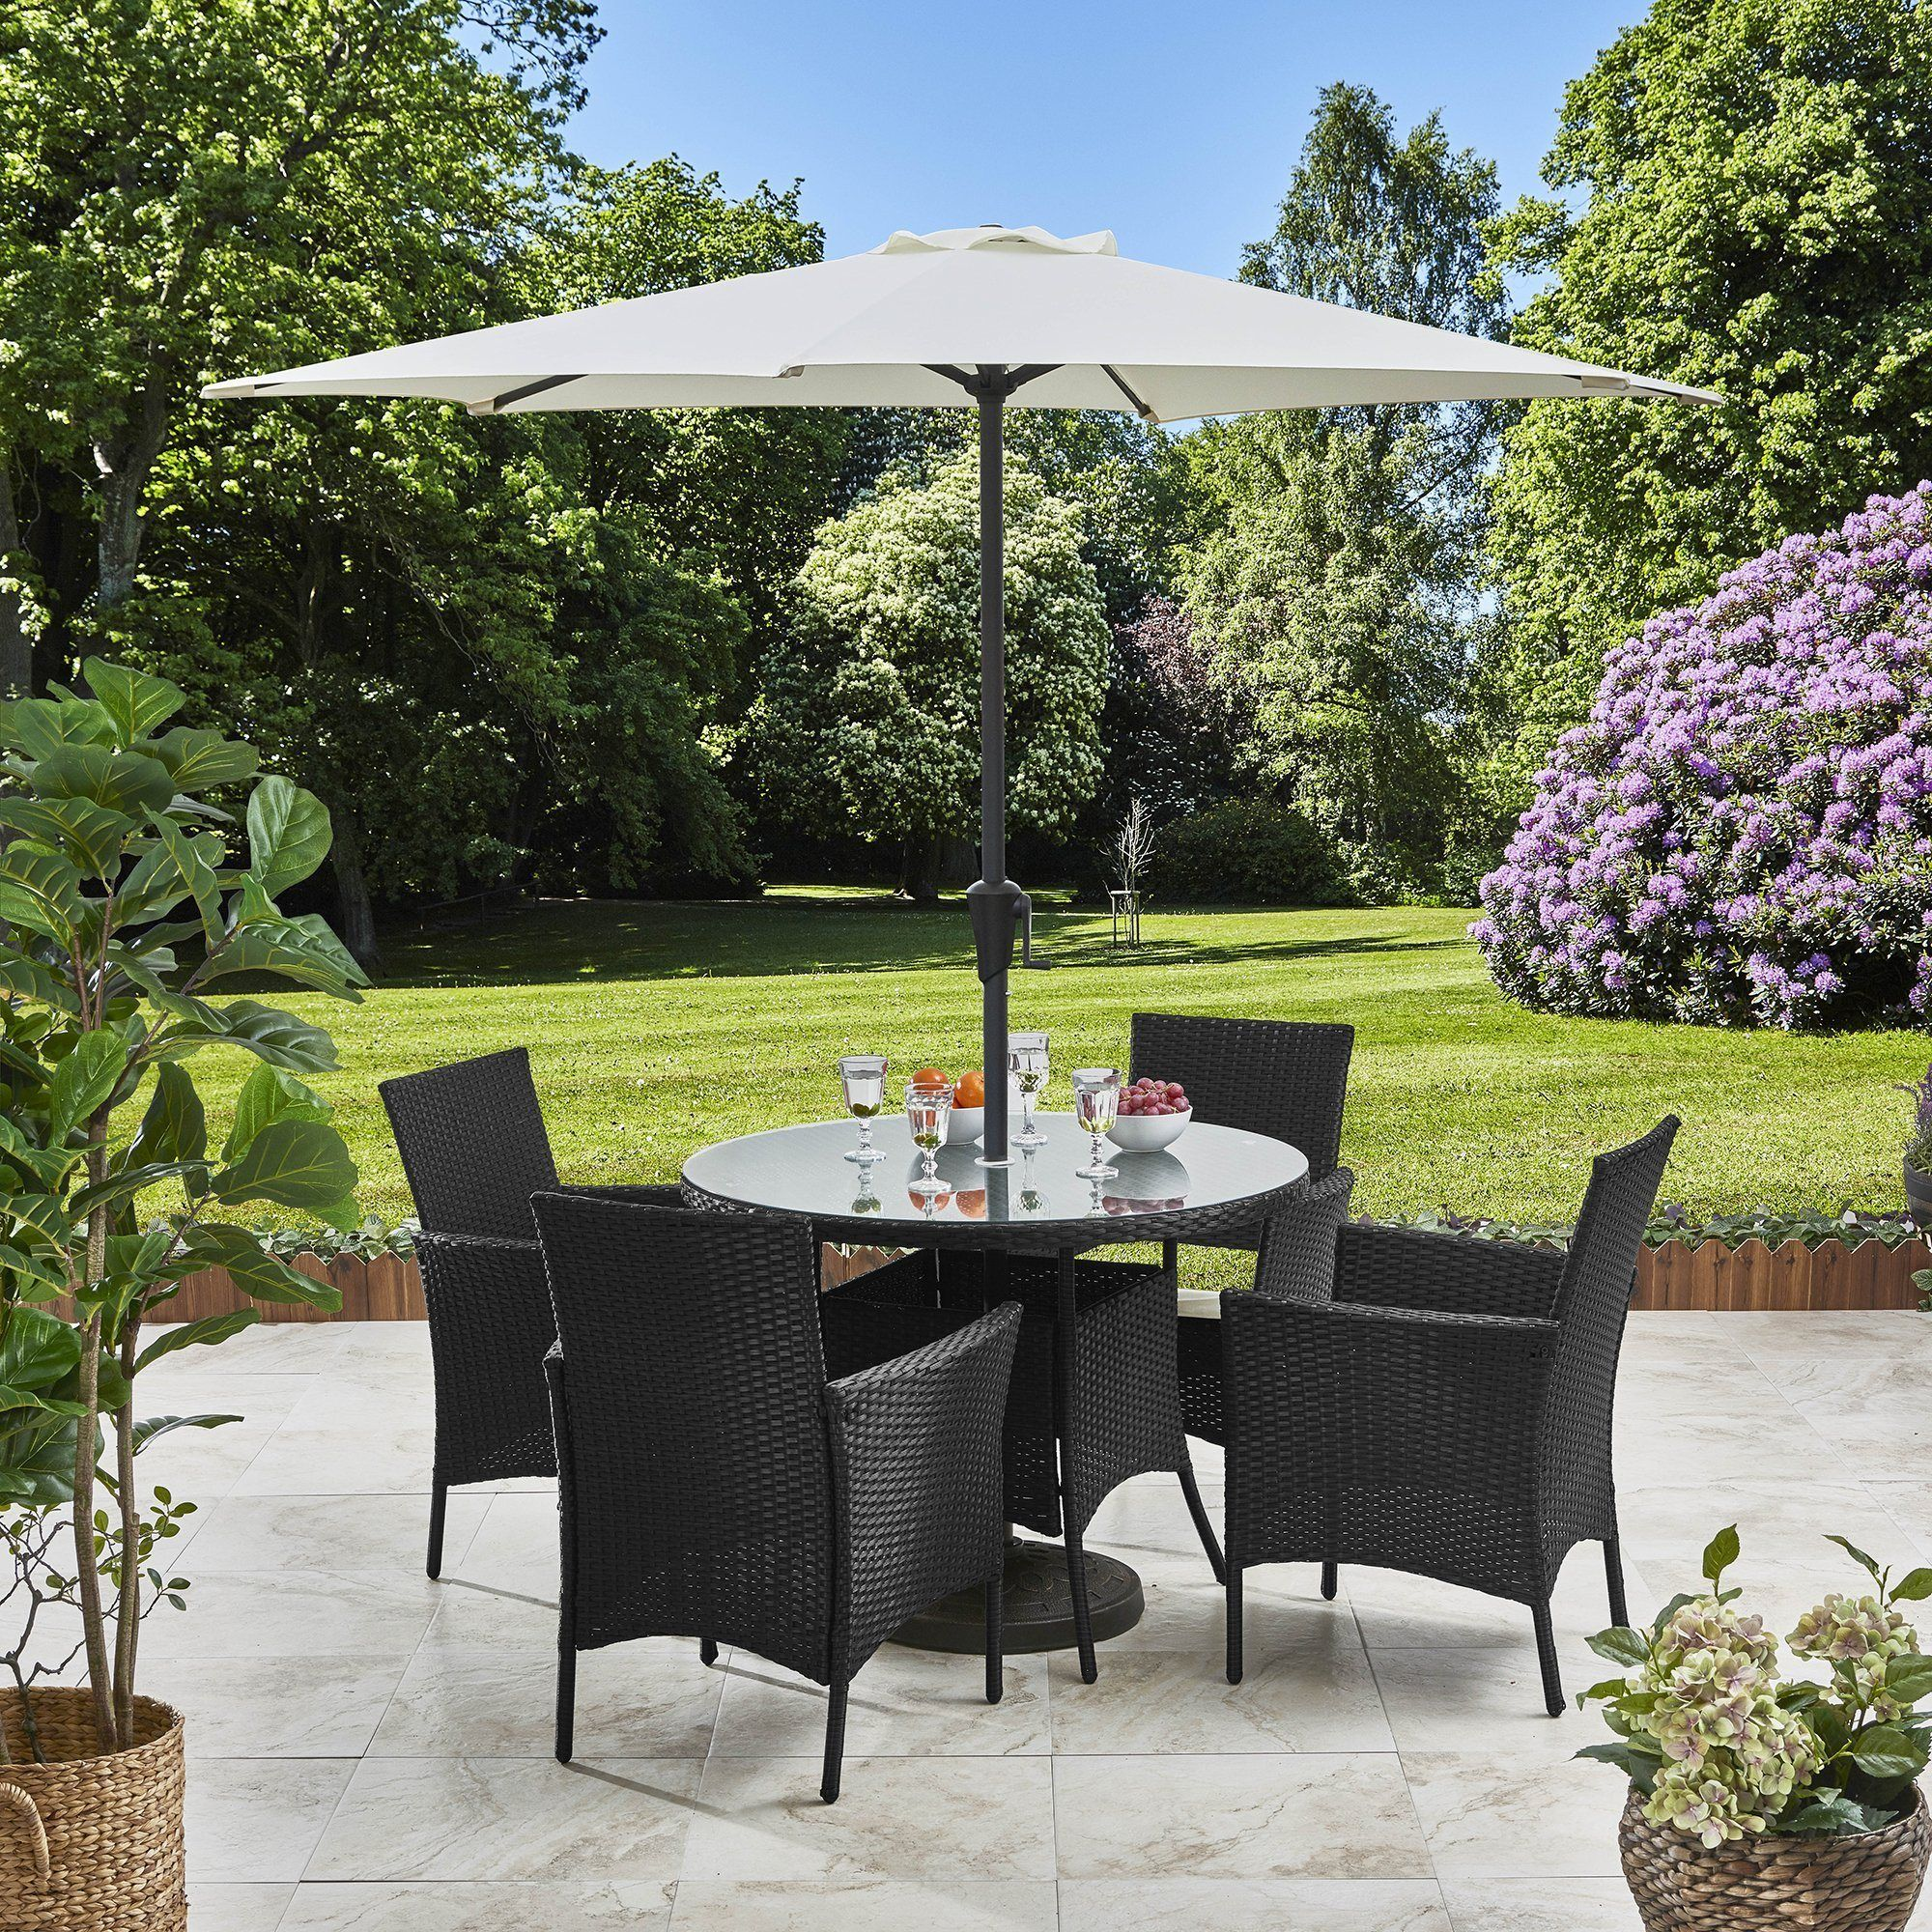 Pre Order In Stock 01 03 May 4 Seater Rattan Round Dining Set With Parasol Rattan Garden Furnit Rattan Garden Furniture Round Dining Set Garden Furniture